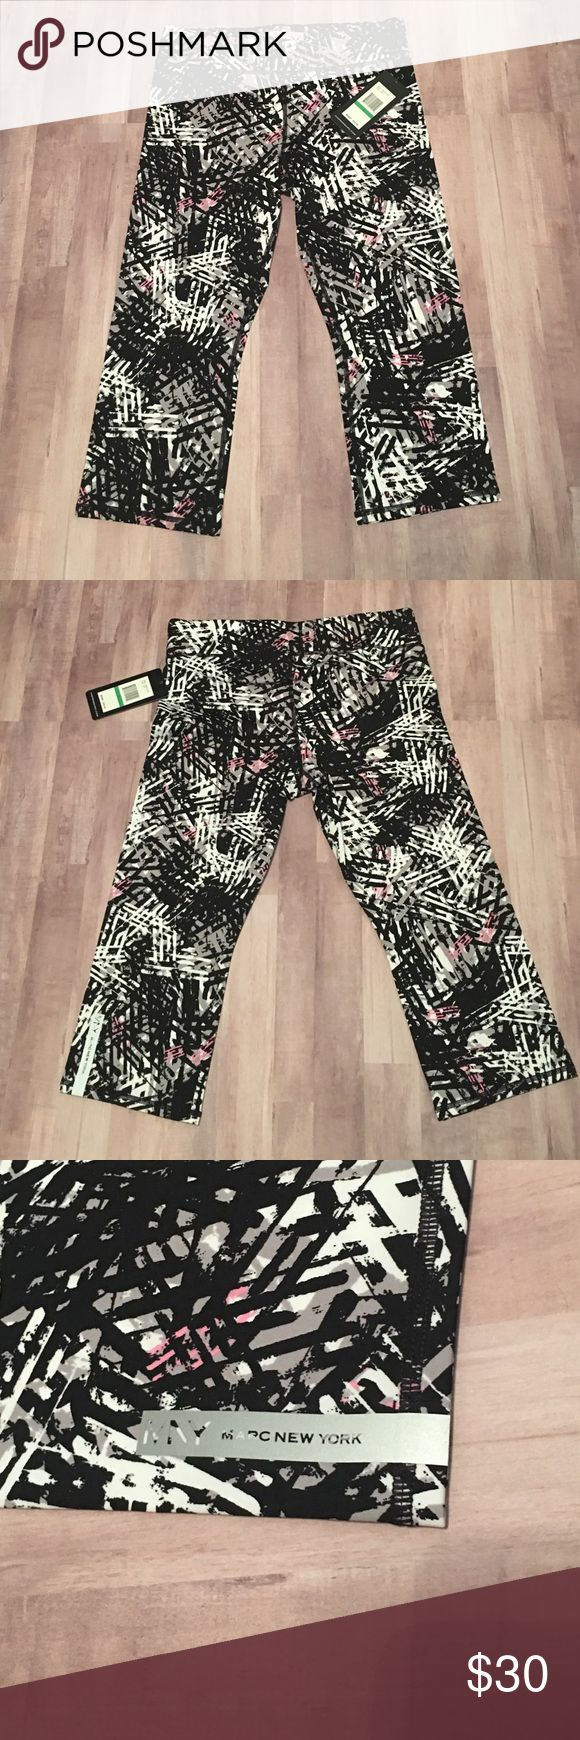 """NWT Andrew Marc Performance Crop Leggings Beautiful Crop Leggings. Great for SoulCycle! Inseam approximately 19"""" Andrew Marc Pants Leggings"""